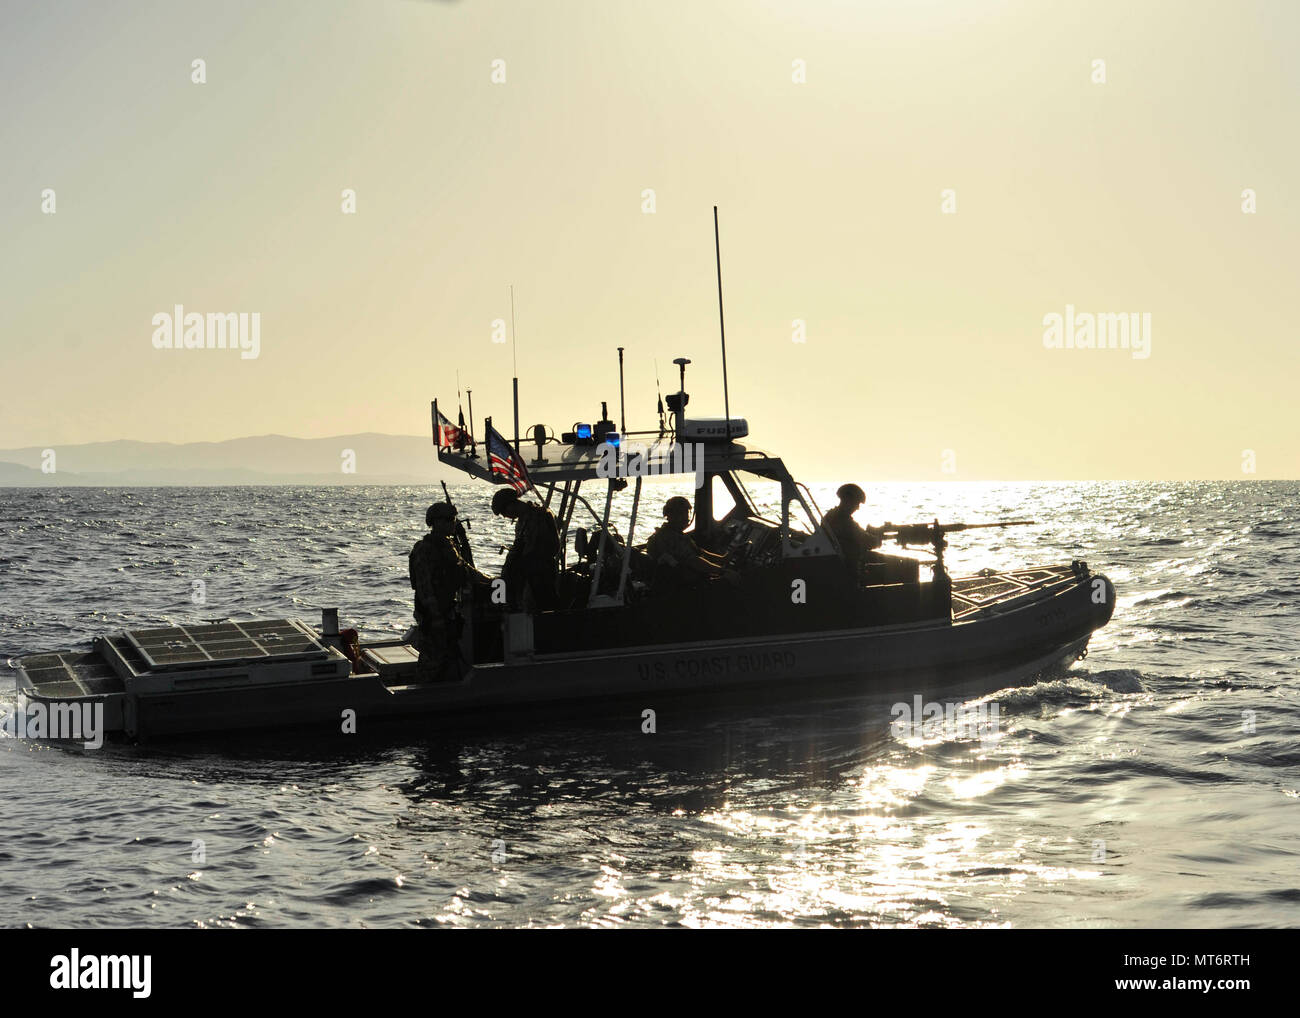 Coast Guardsmen from Port Security Unit 305 aboard a 32-foot Transportable Port Security Boat enforce a security zone off the coast of Naval Station Guantanamo Bay, Cuba, Wednesday, July 19, 2017. PSU 305 is deployed to Naval Station Guantanamo Bay to provide mission support for the Department of Defense. U.S. Coast Guard photo by Petty Officer 2nd Class Matthew S. Masaschi Stock Photo